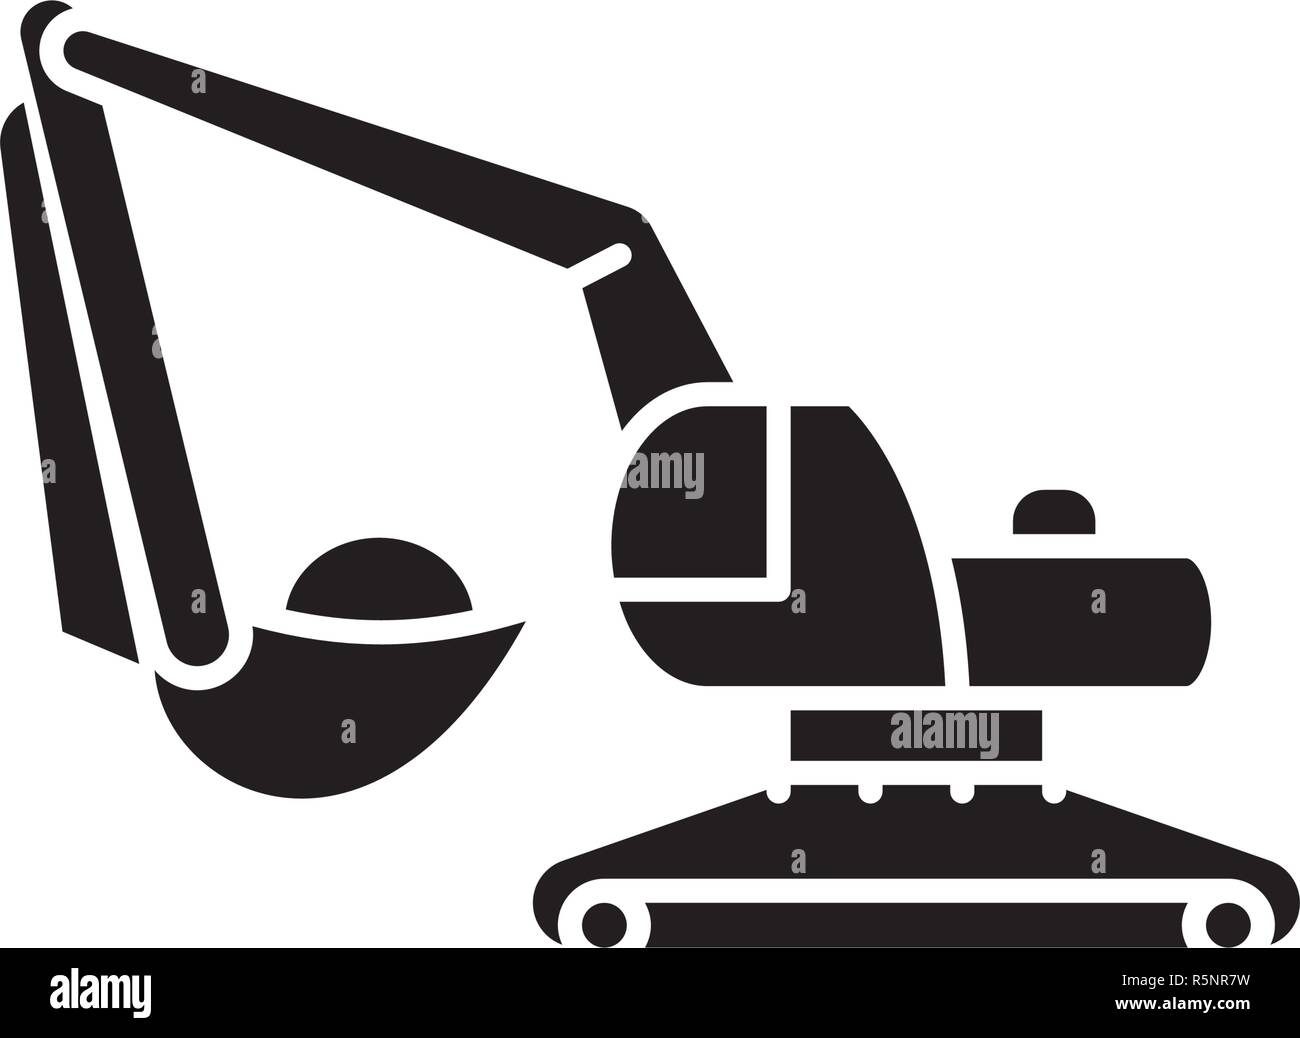 Excavator works black icon, vector sign on isolated background. Excavator works concept symbol, illustration  - Stock Vector